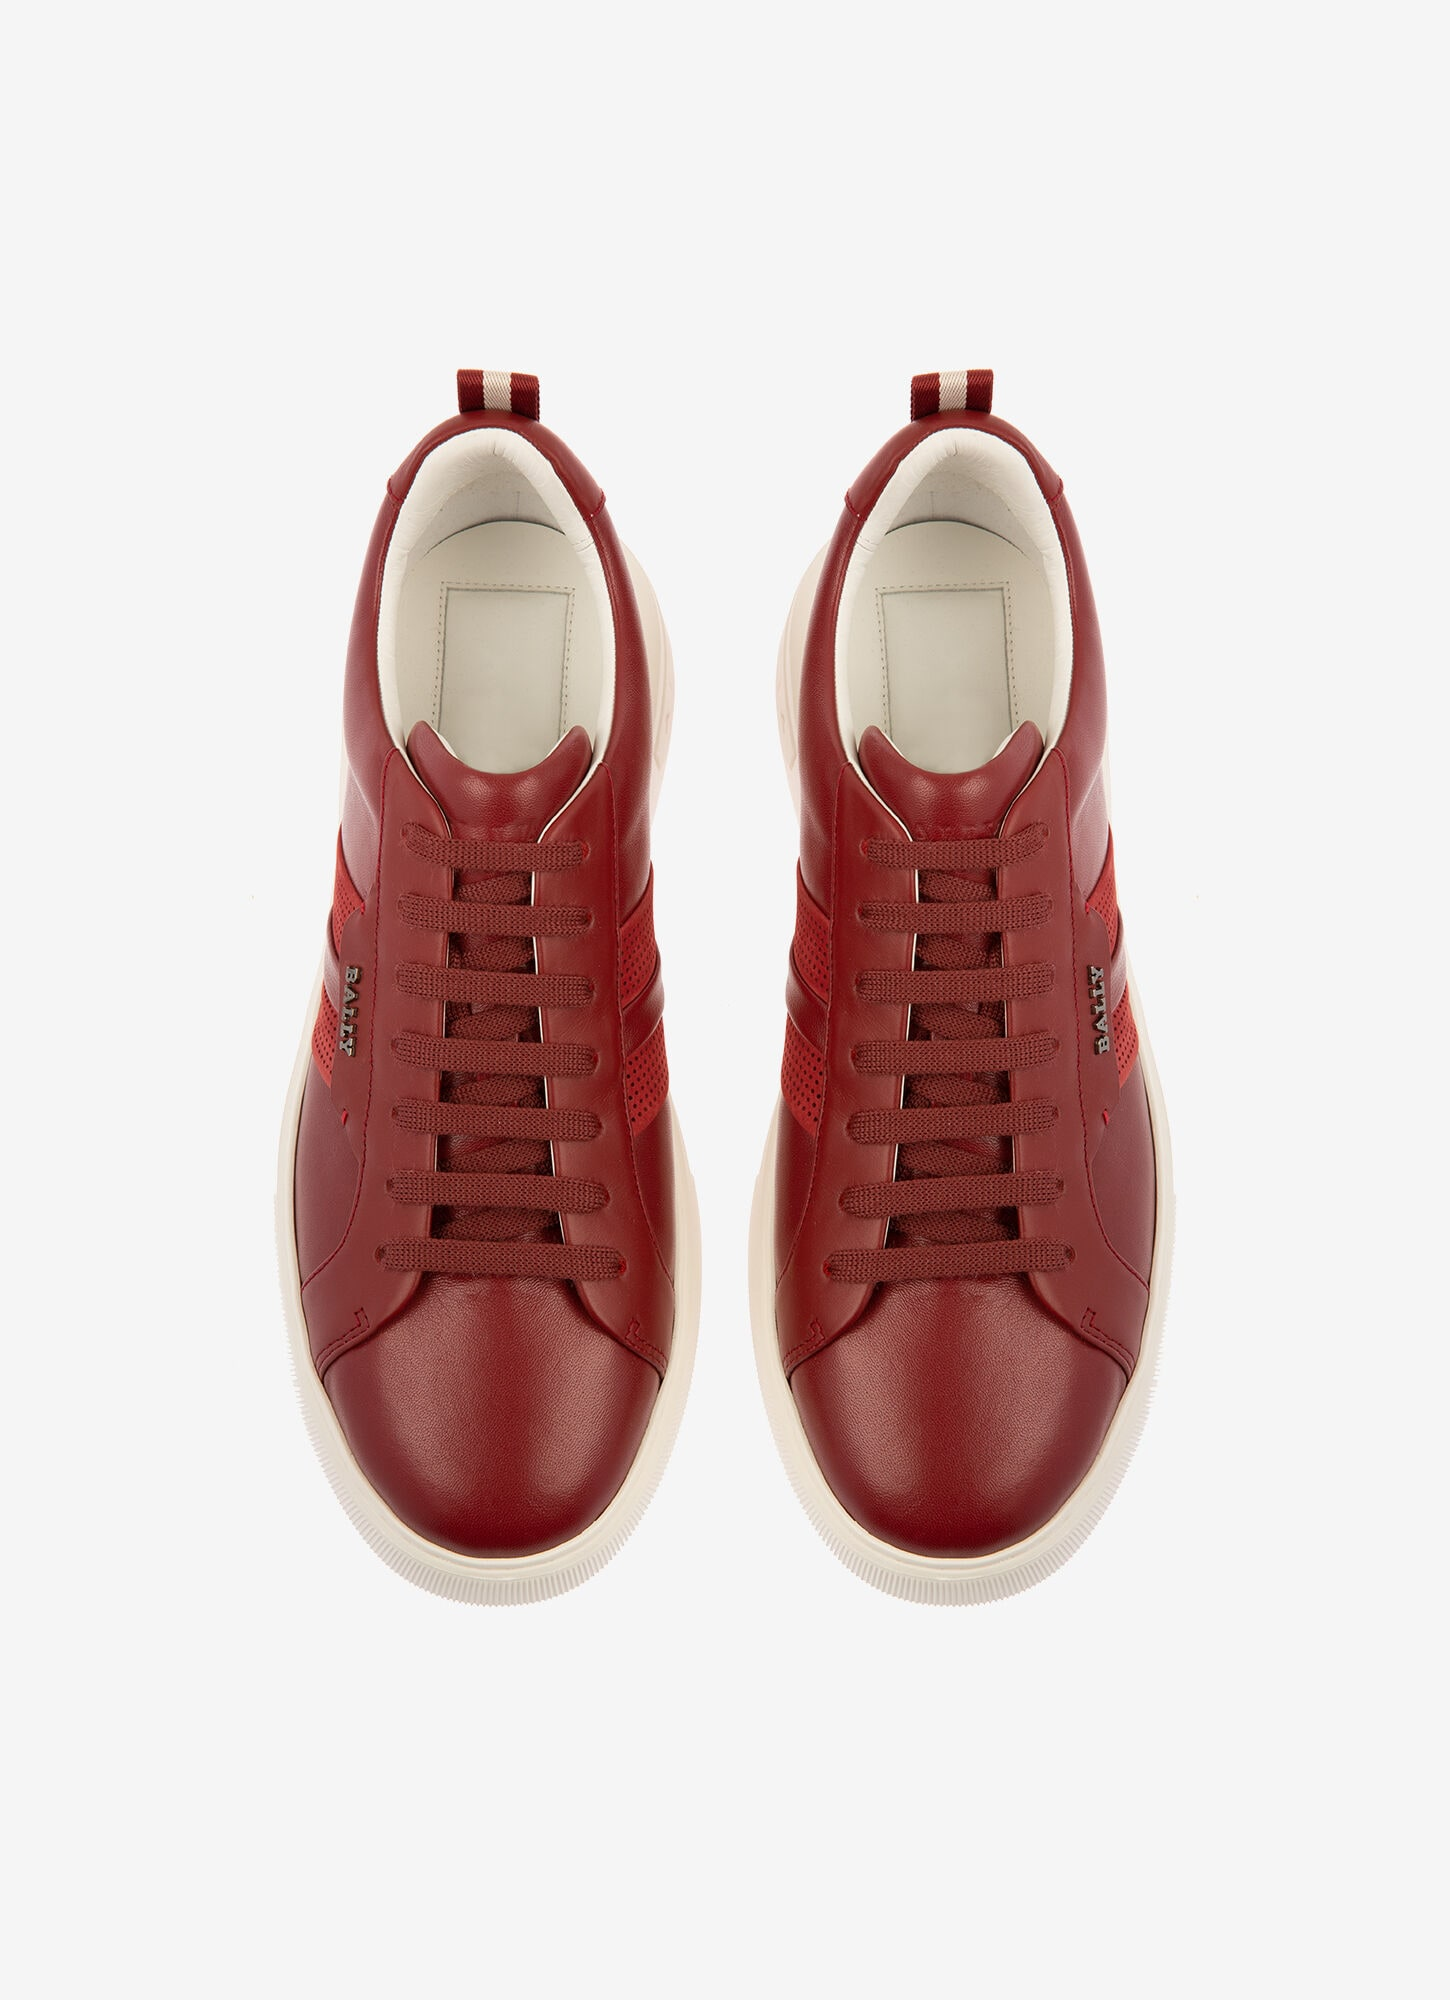 Maxim| Mens Sneakers | Bally Red